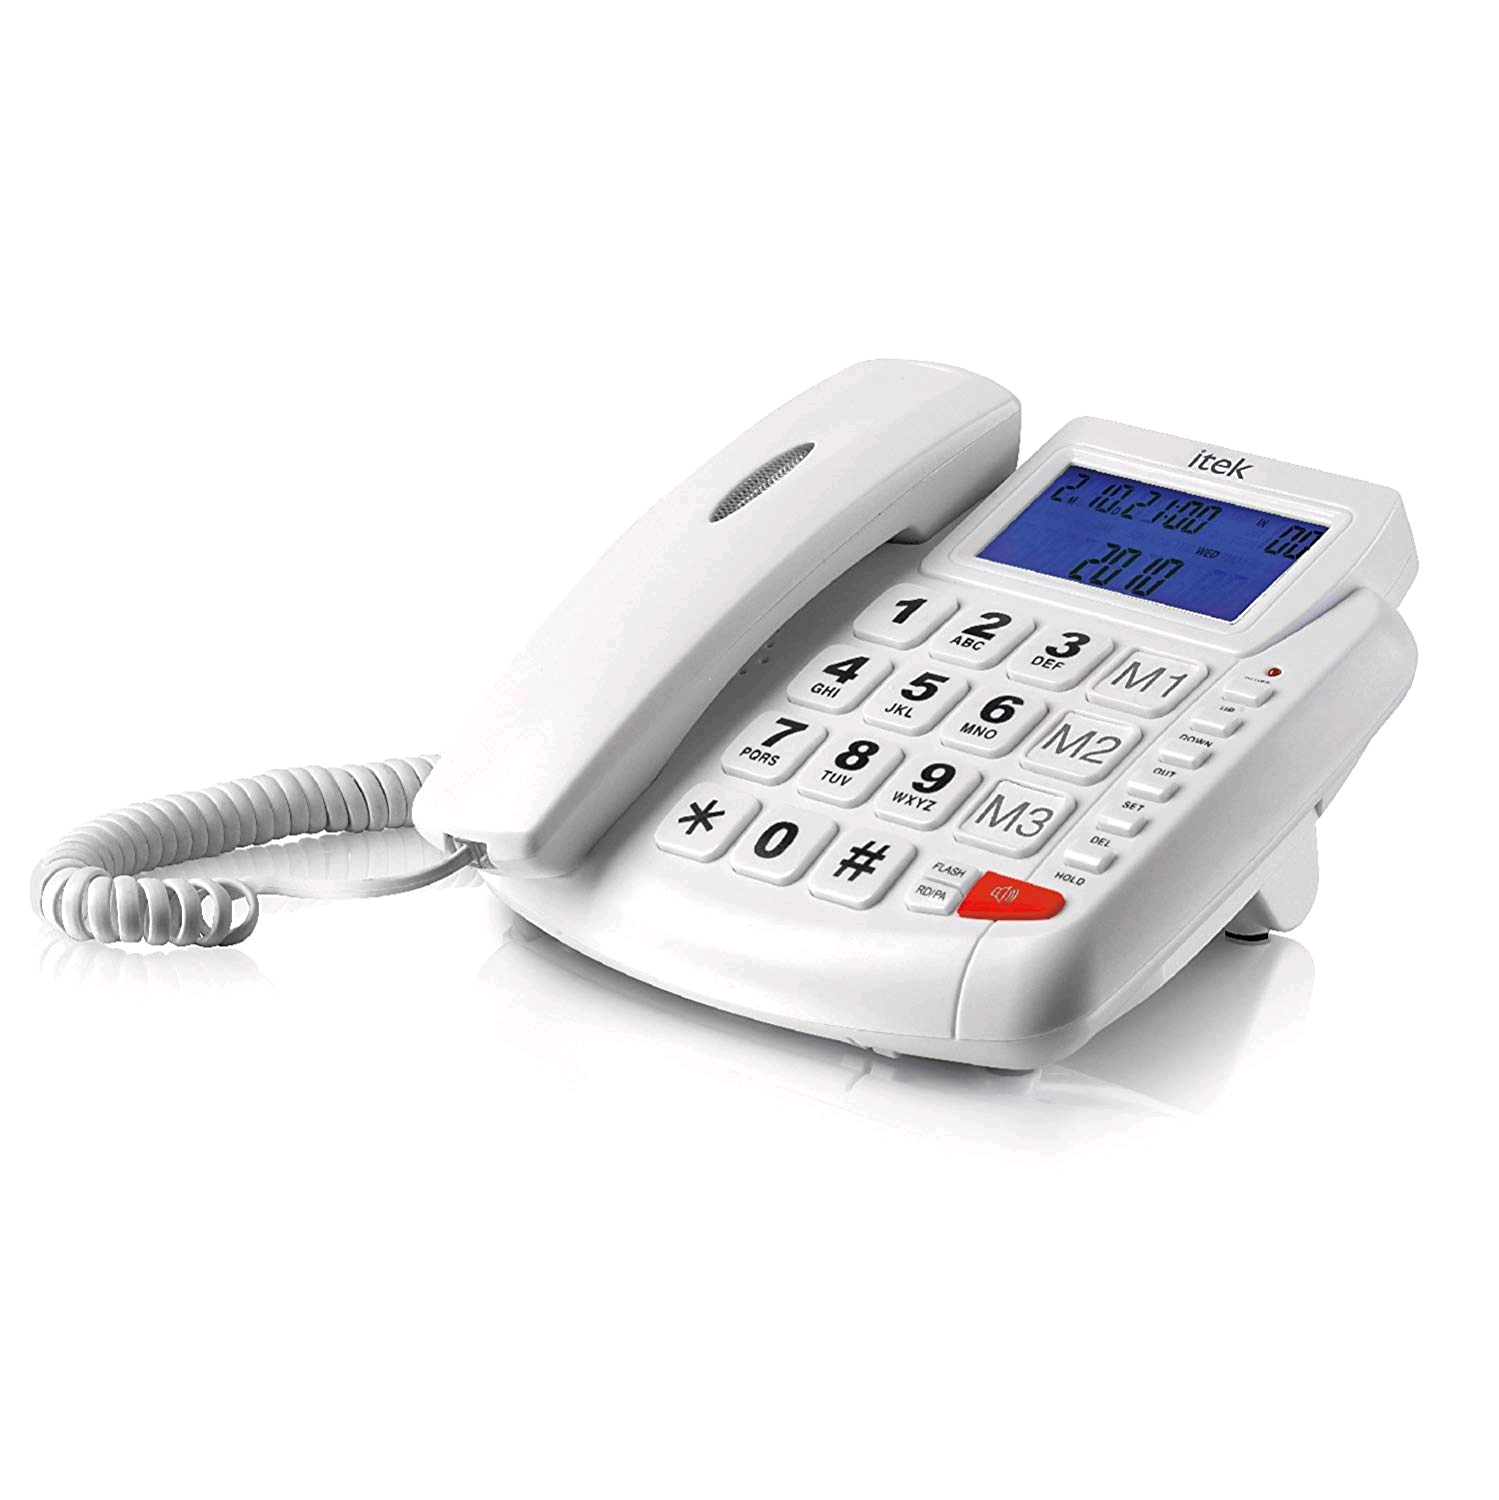 ITEK Big Button Corded Phone LCD Display Hands Free